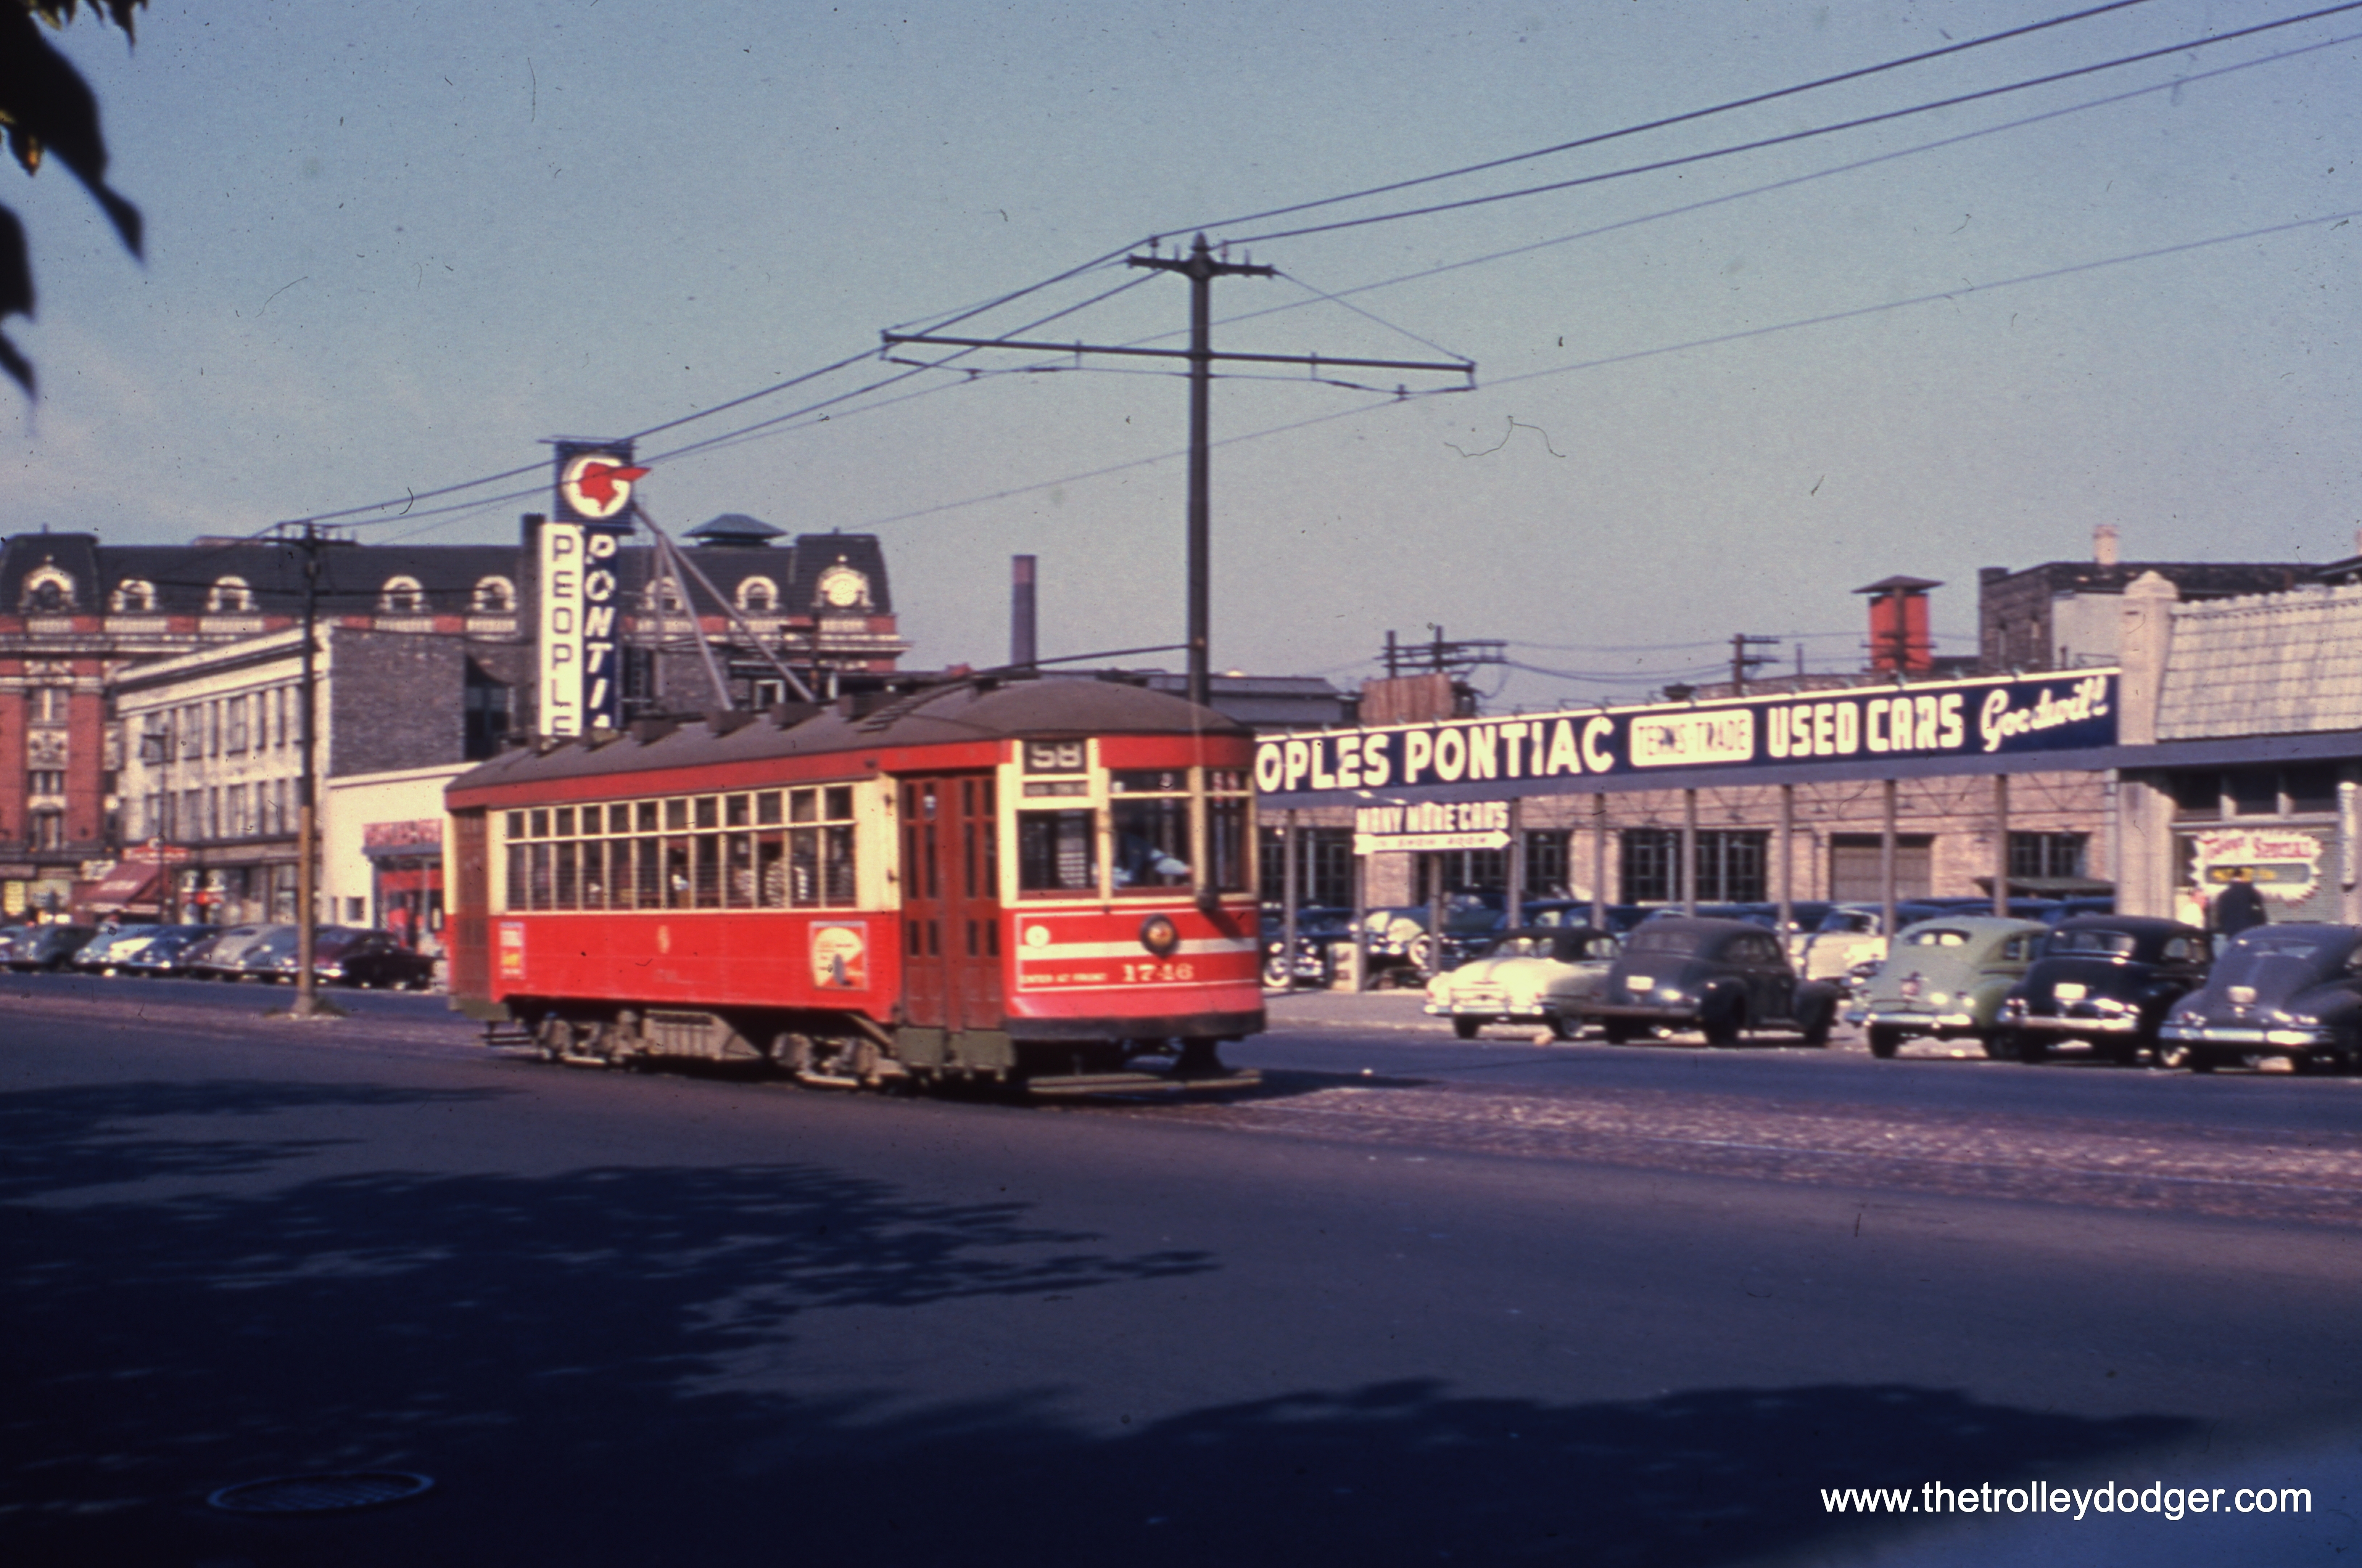 Chicago Streetcars in Color, Part 3 – The Trolley Dodger